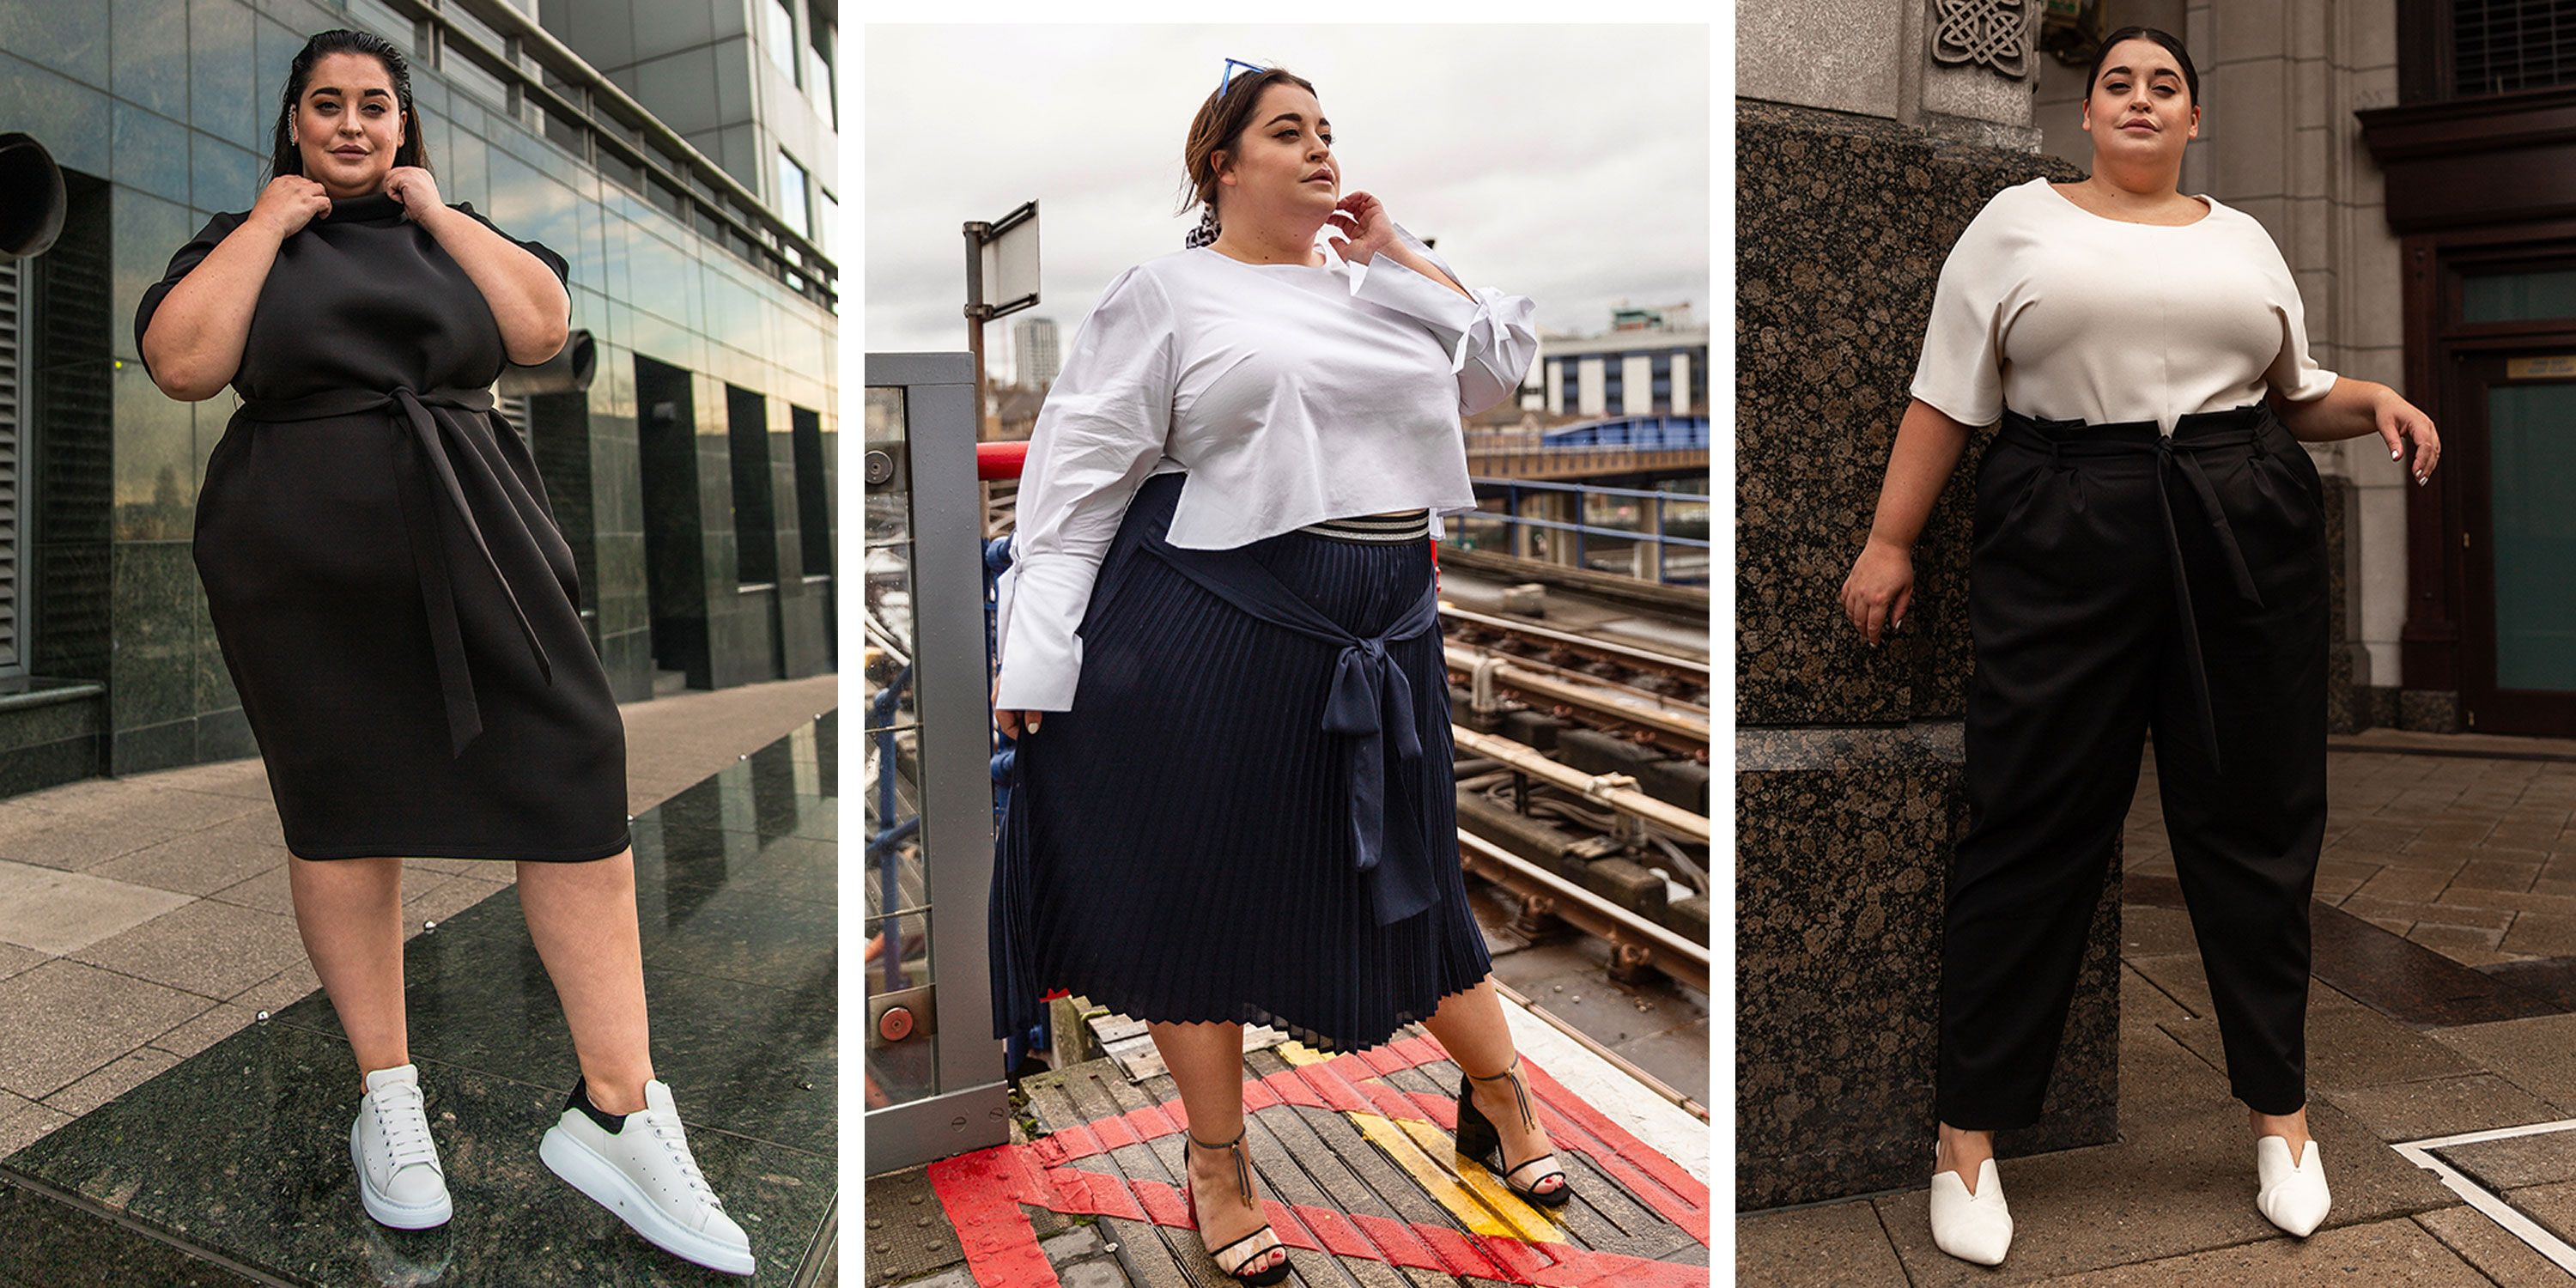 River Island has removed its plus size clothing range from